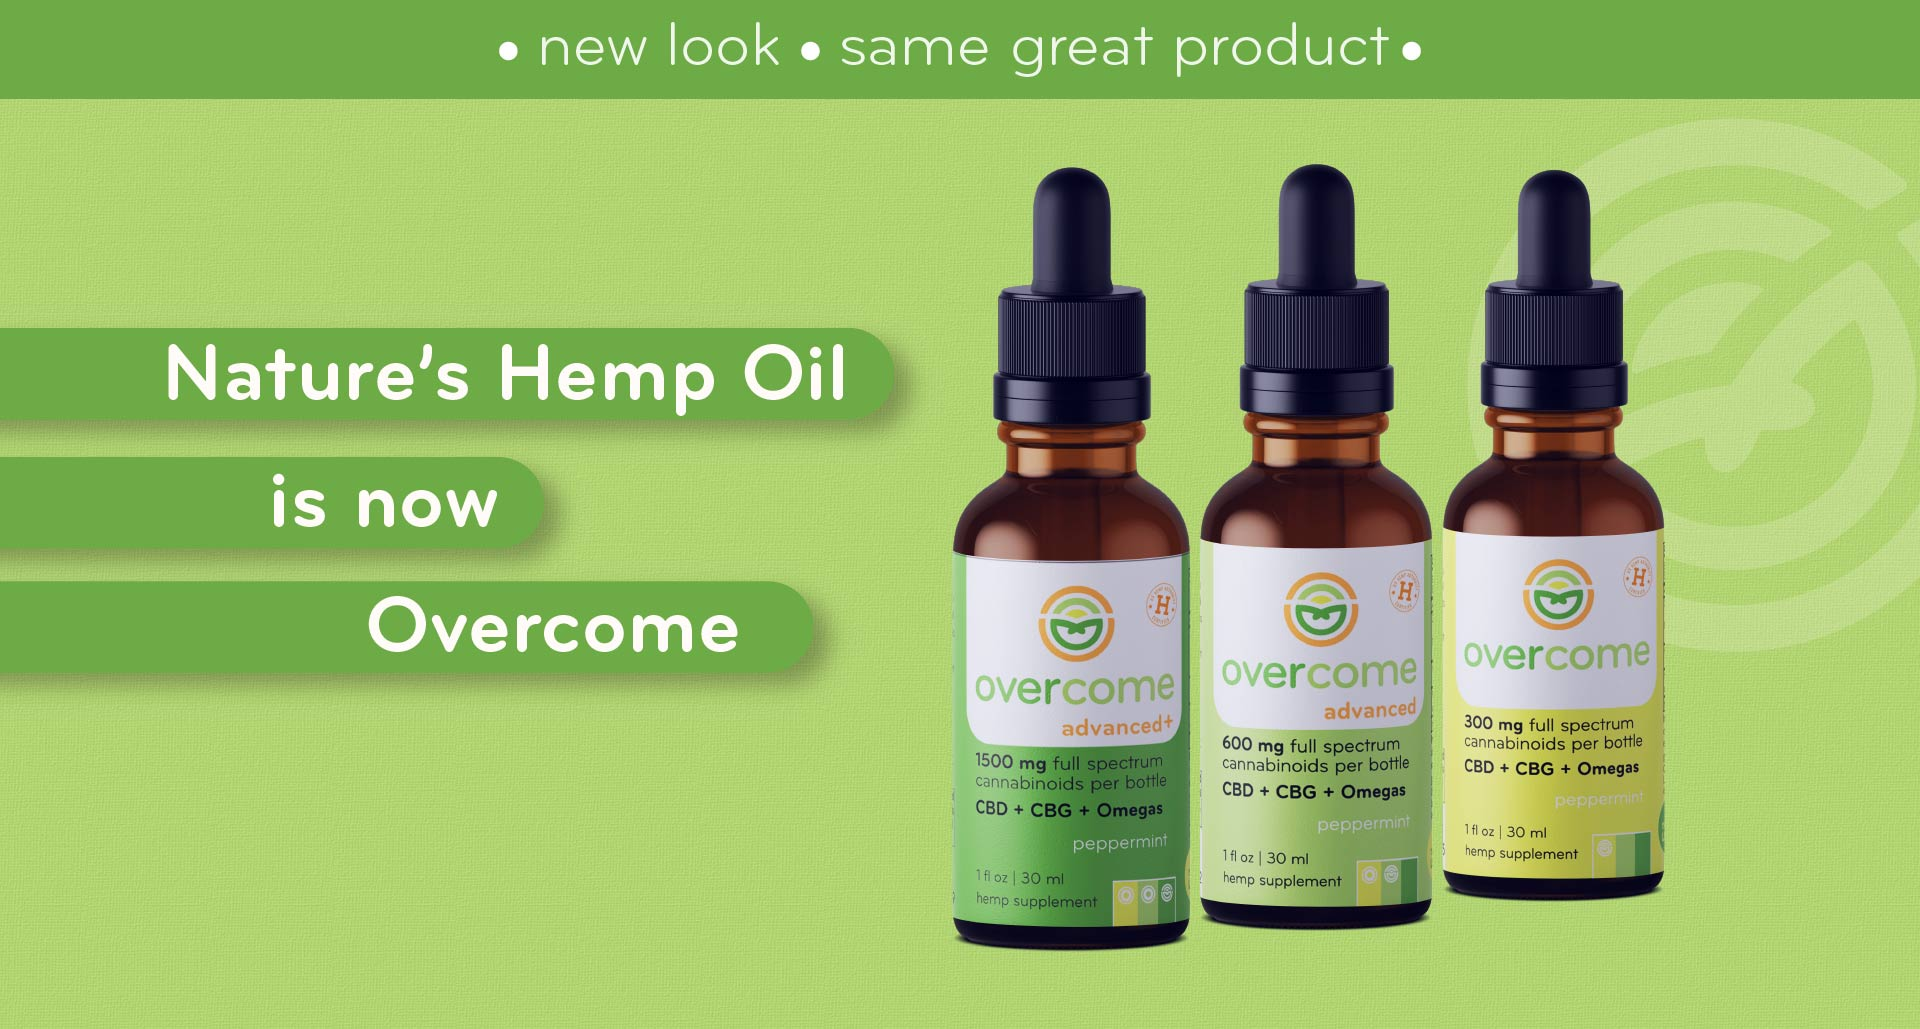 natures-hemp-oil-is-now-overcome-everyday